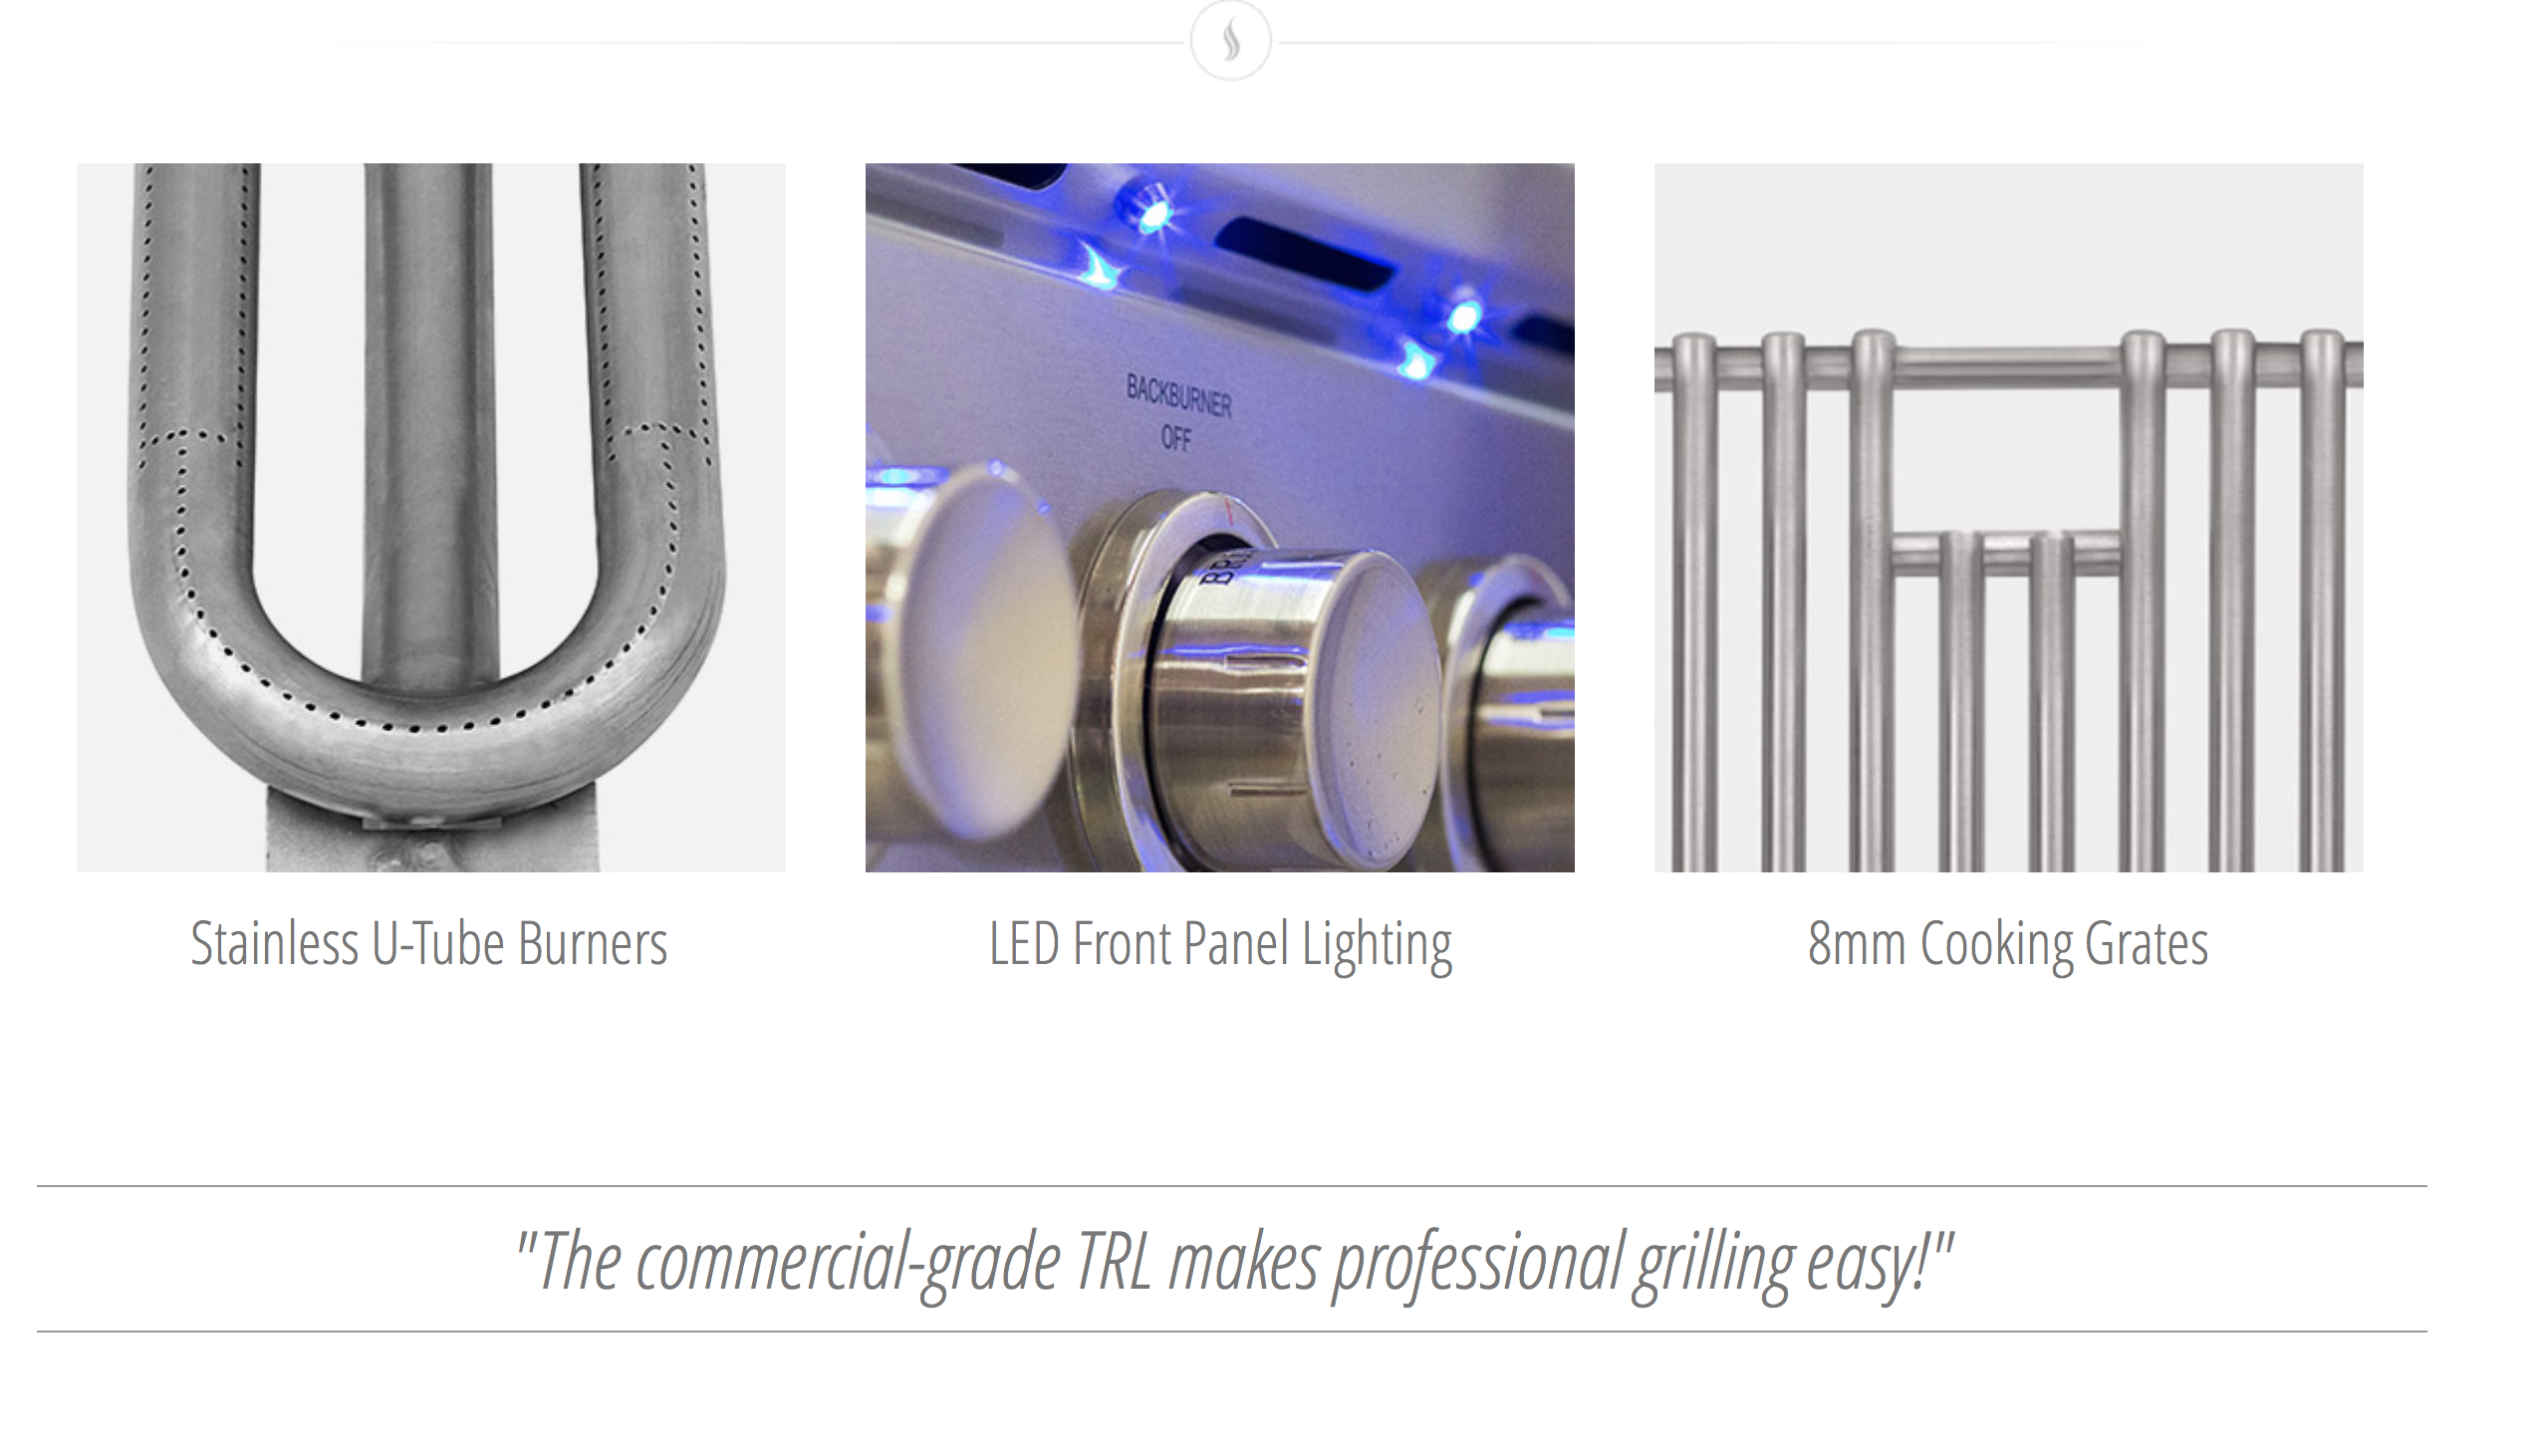 Features and upgrades of the TRL series by summerset include 8mm grates, stainless steel burners and led lighting